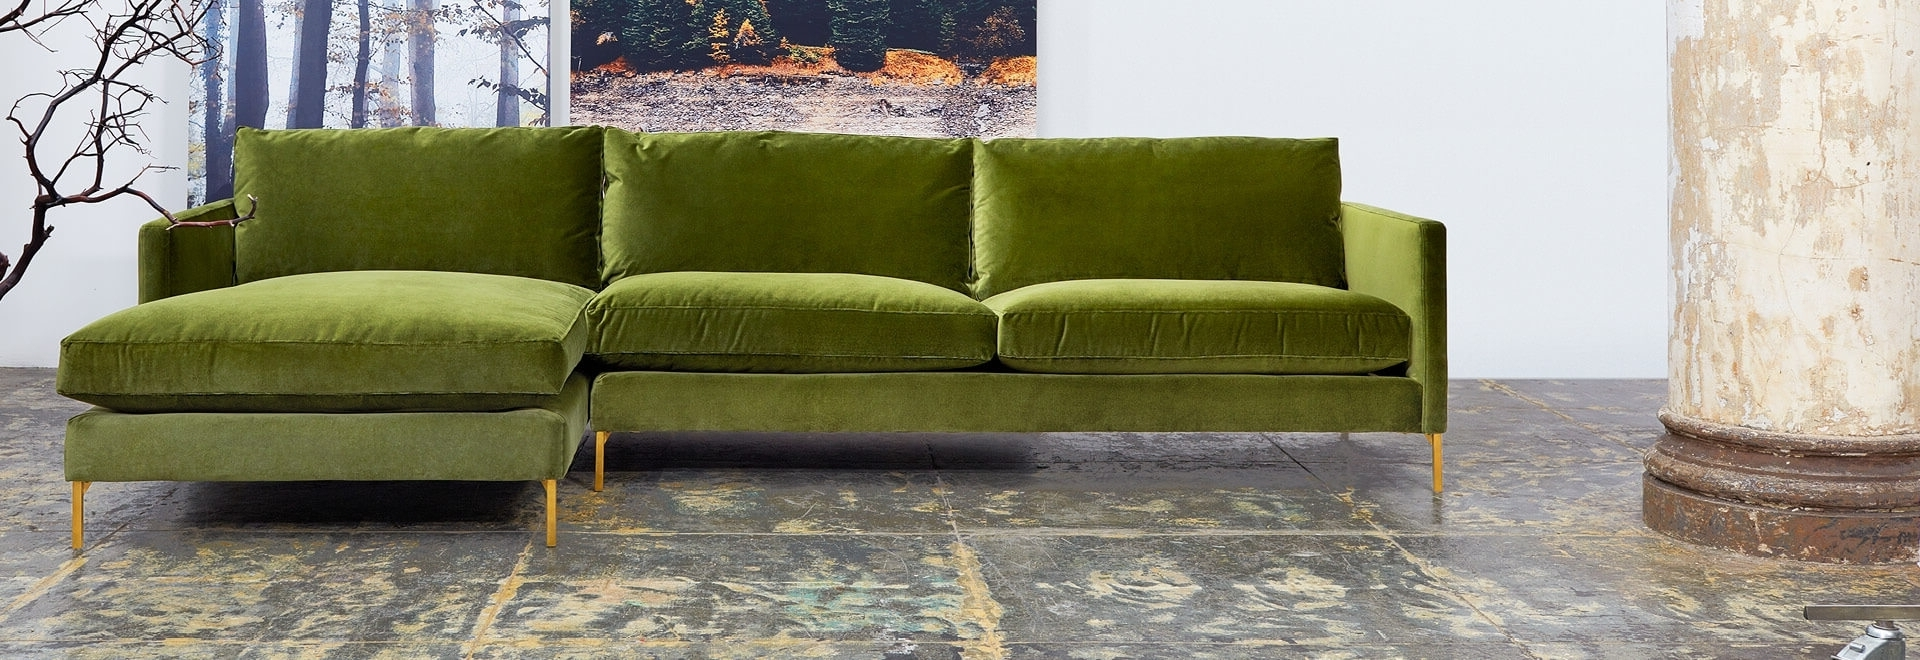 Queens Ny Sectional Sofas Regarding Most Up To Date Cobble Hill Furniture At Abc Home (Gallery 13 of 15)